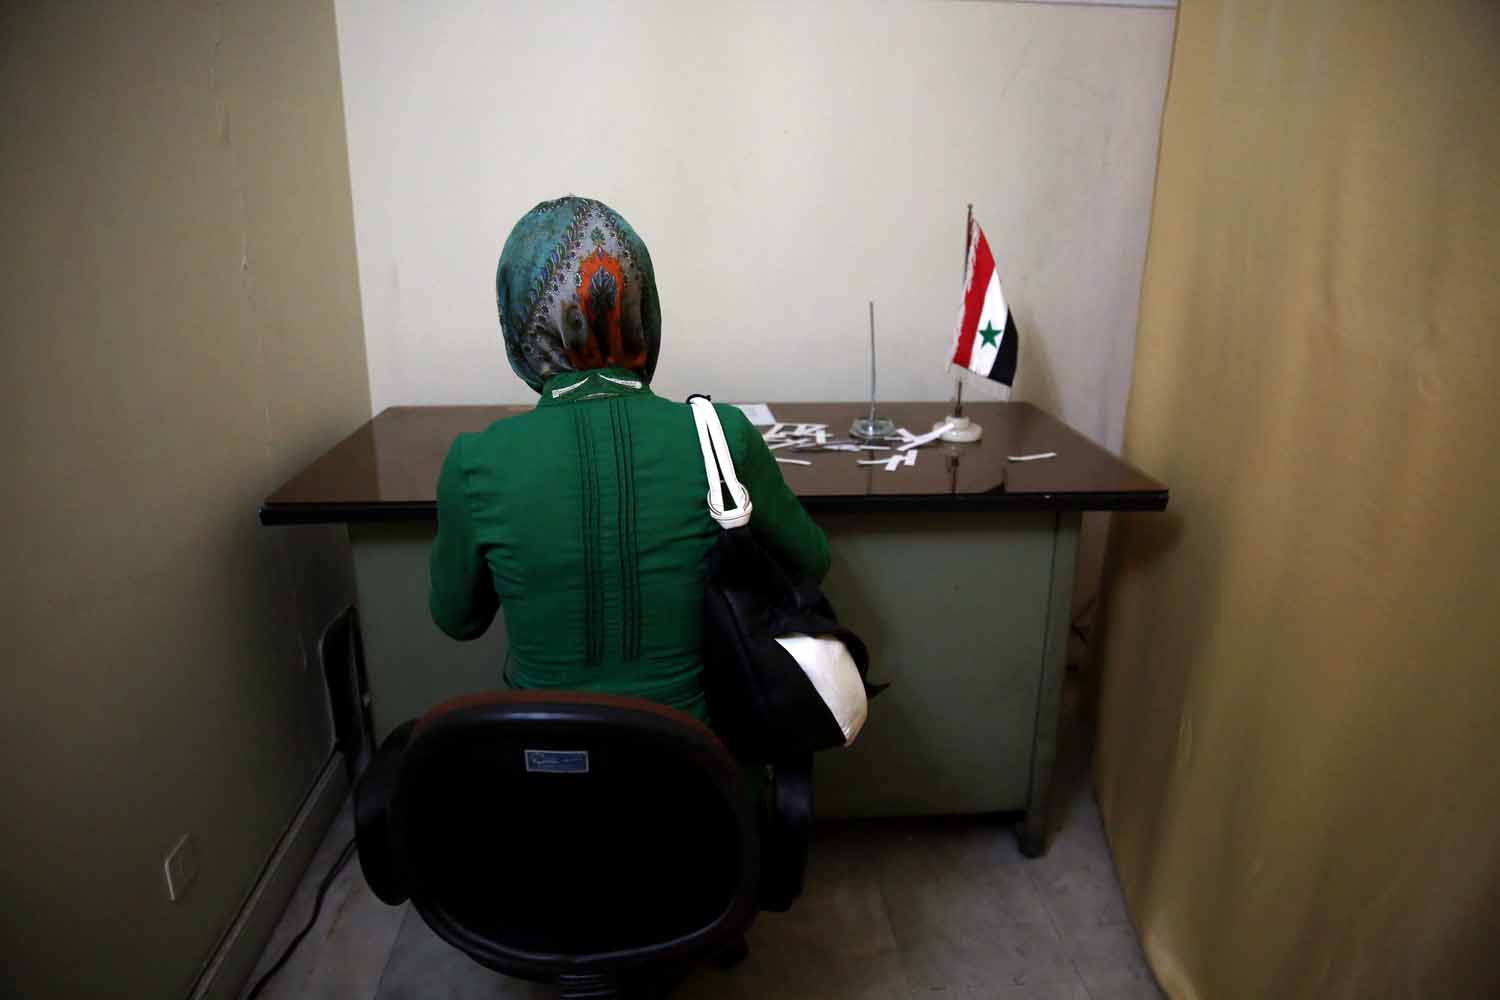 May 28, 2014. A Syrian woman who lives in Iran fills in the ballot for her country's presidential election at the Syrian Embassy in Tehran, Iran.